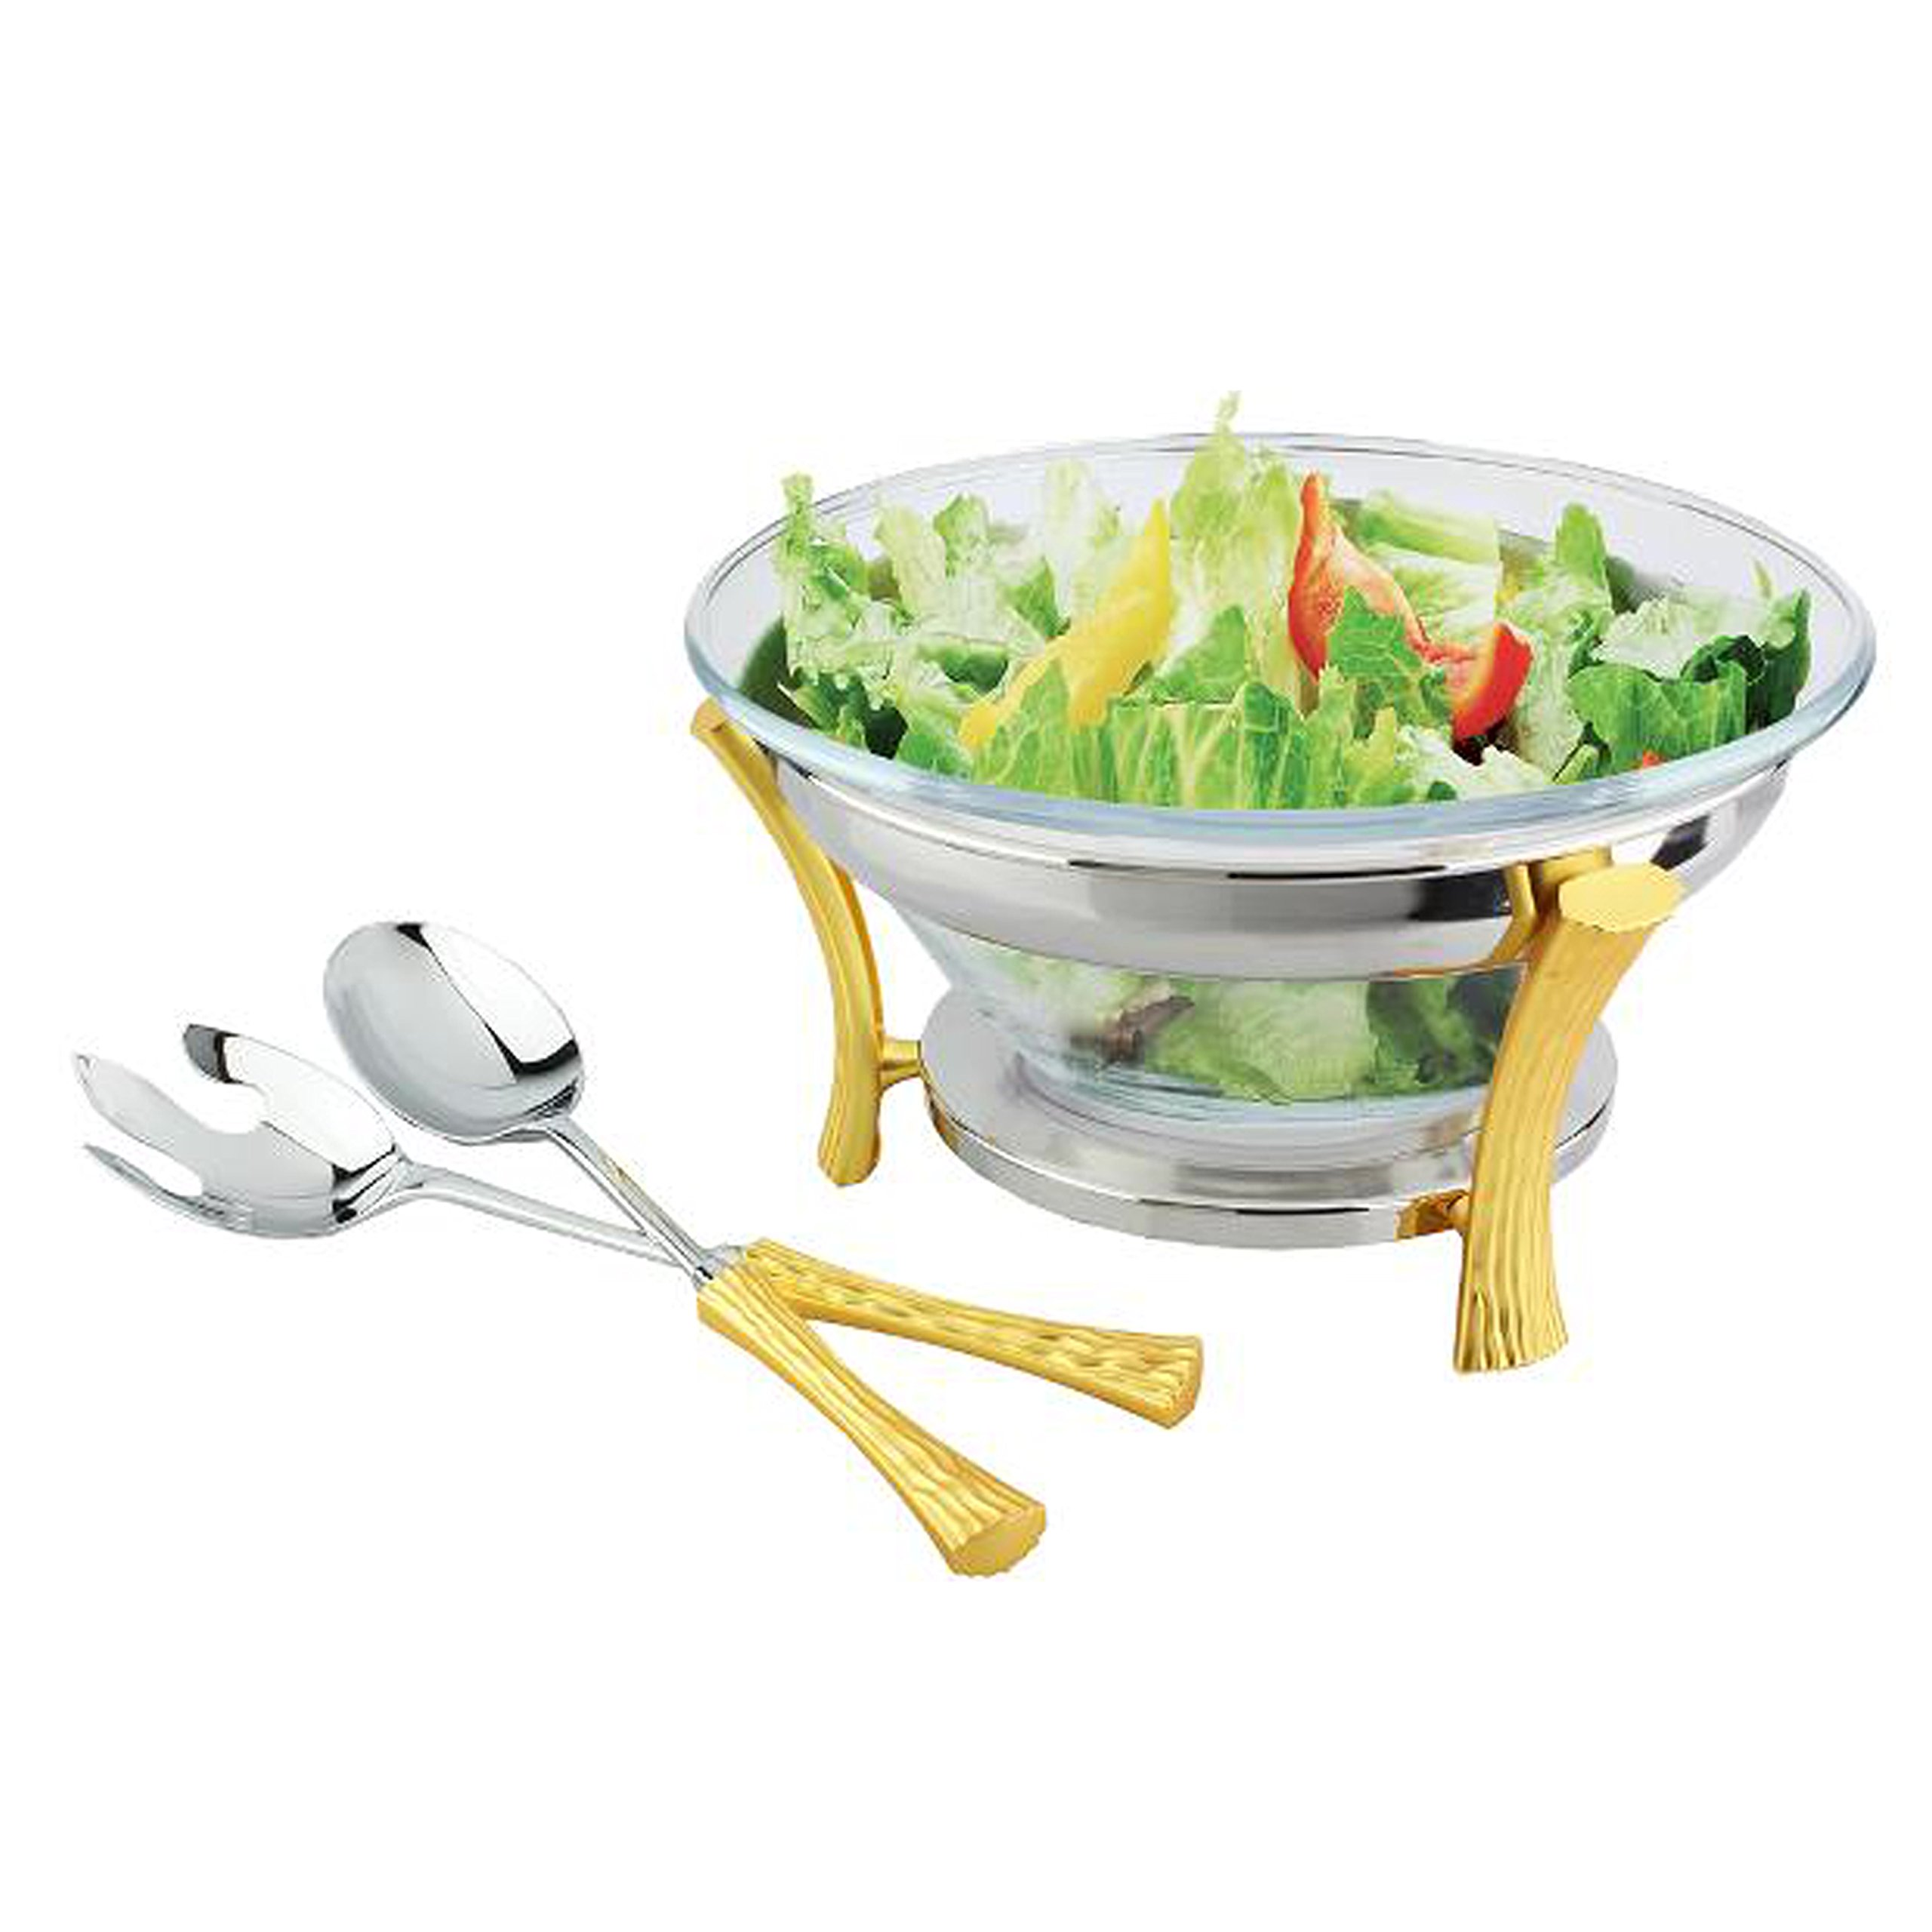 Gold Two Tone Design NG830 salad-server-sets, Gold Two Tone